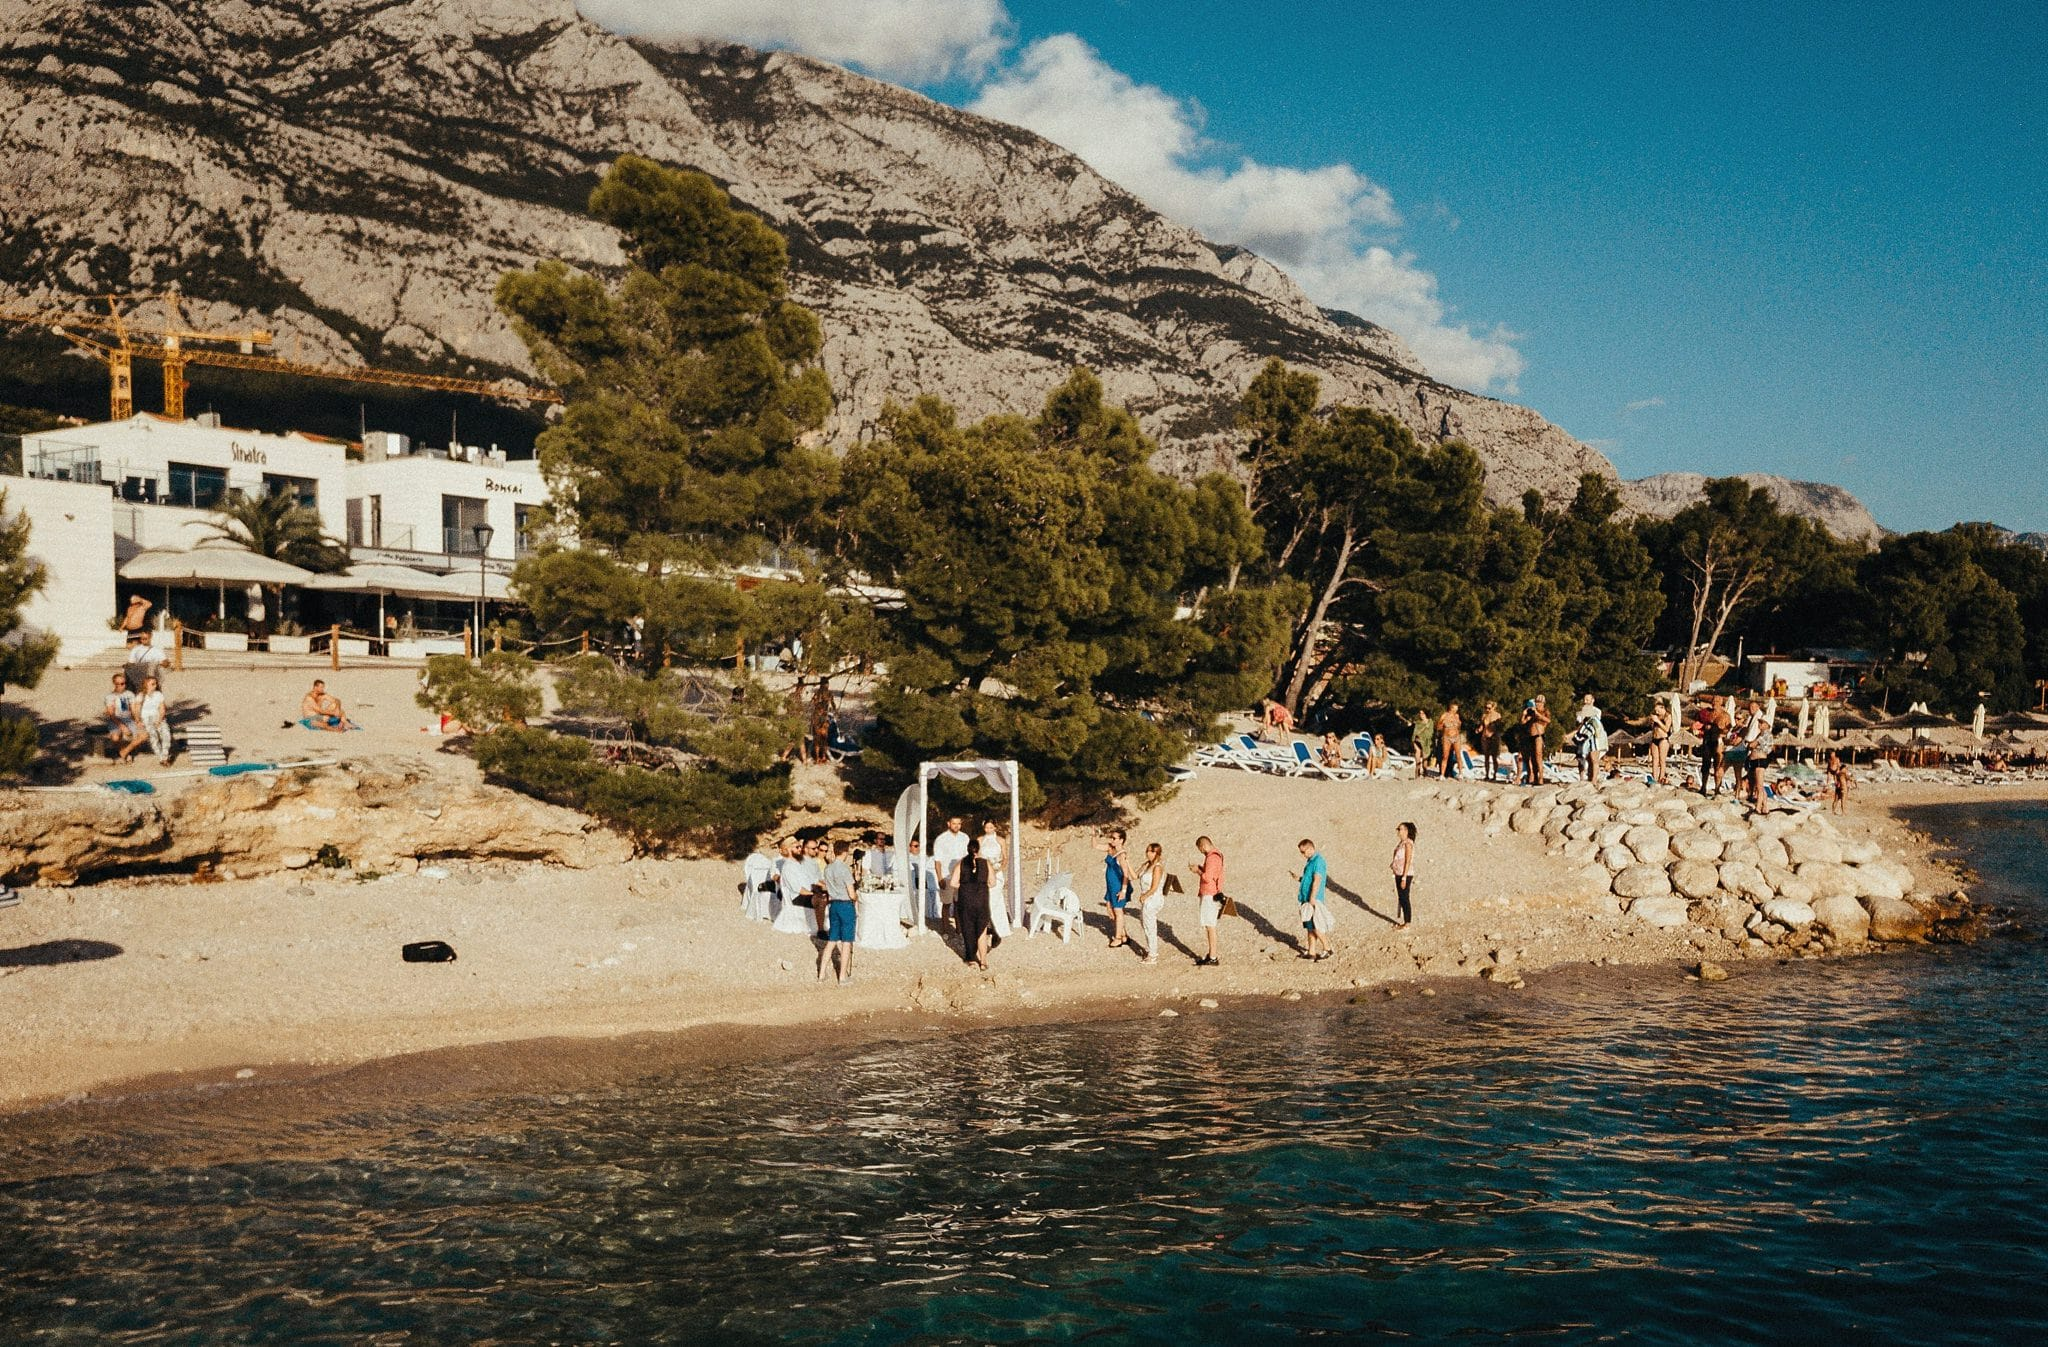 makarska wedding photographer croatia 014 - Dalmatia Wedding Photographer | Adrienn & Attila